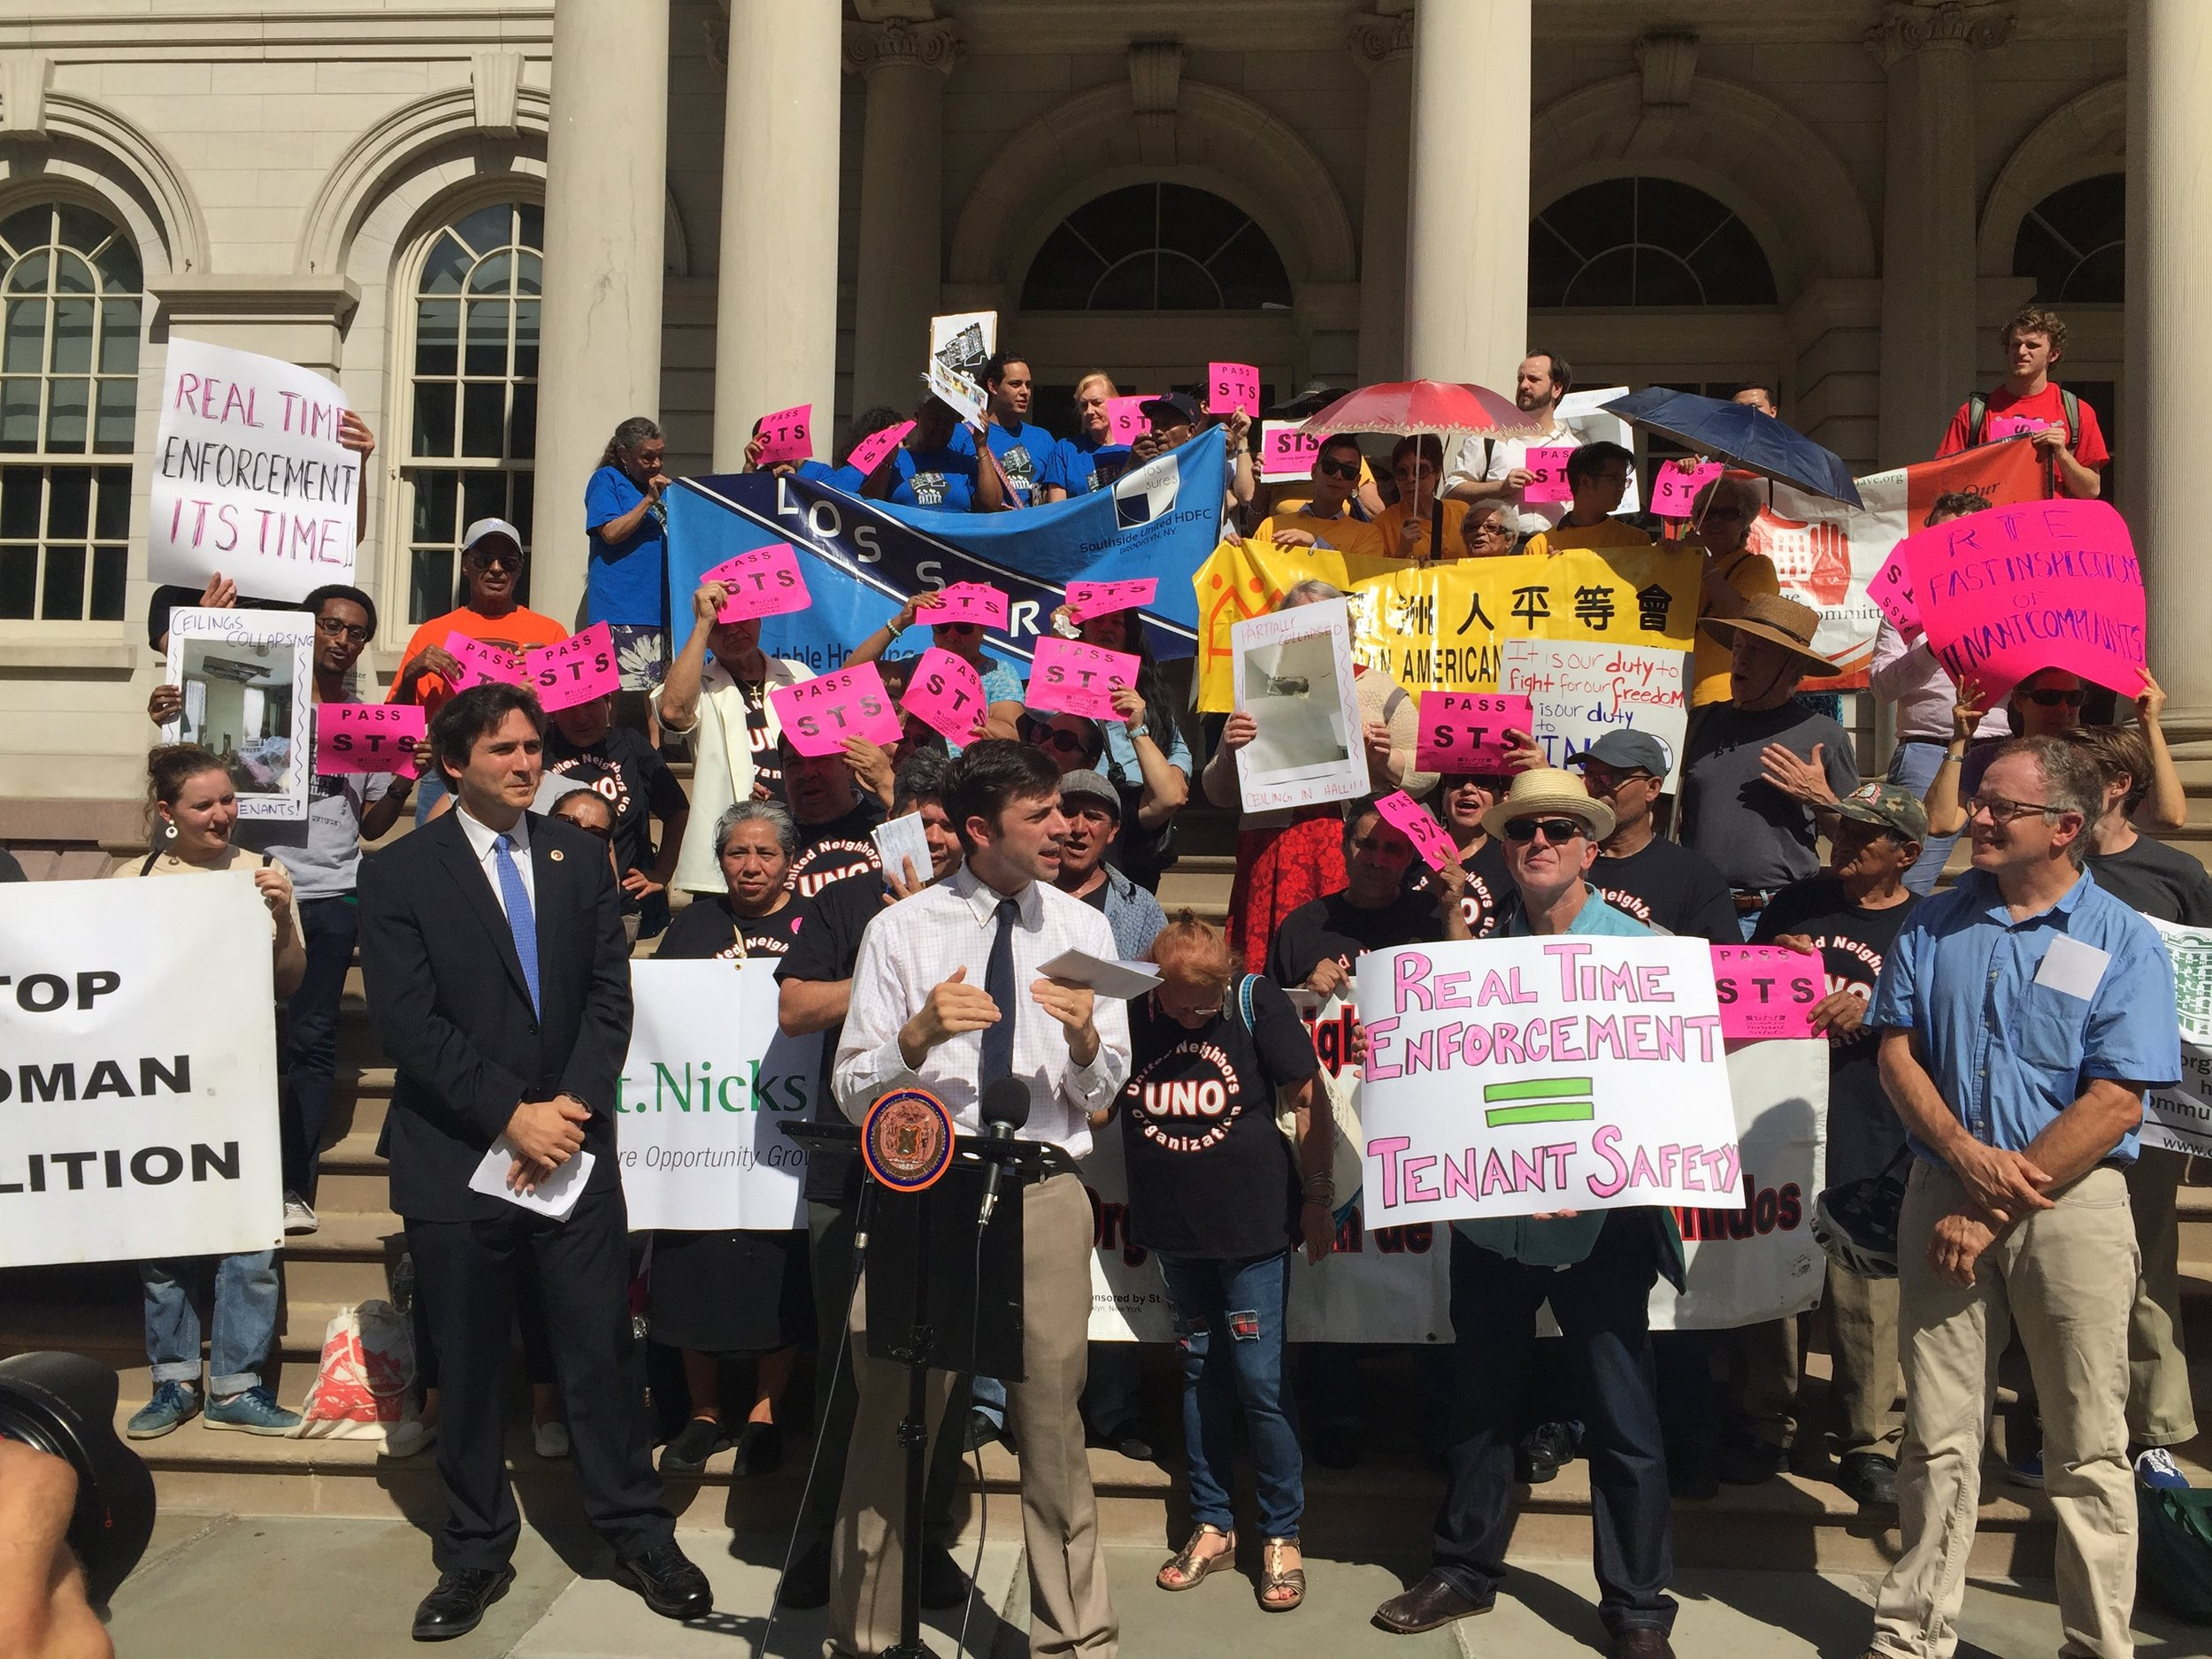 The Stand for Tenant Safety (STS) coalition is made up of grassroots tenant organizing groups